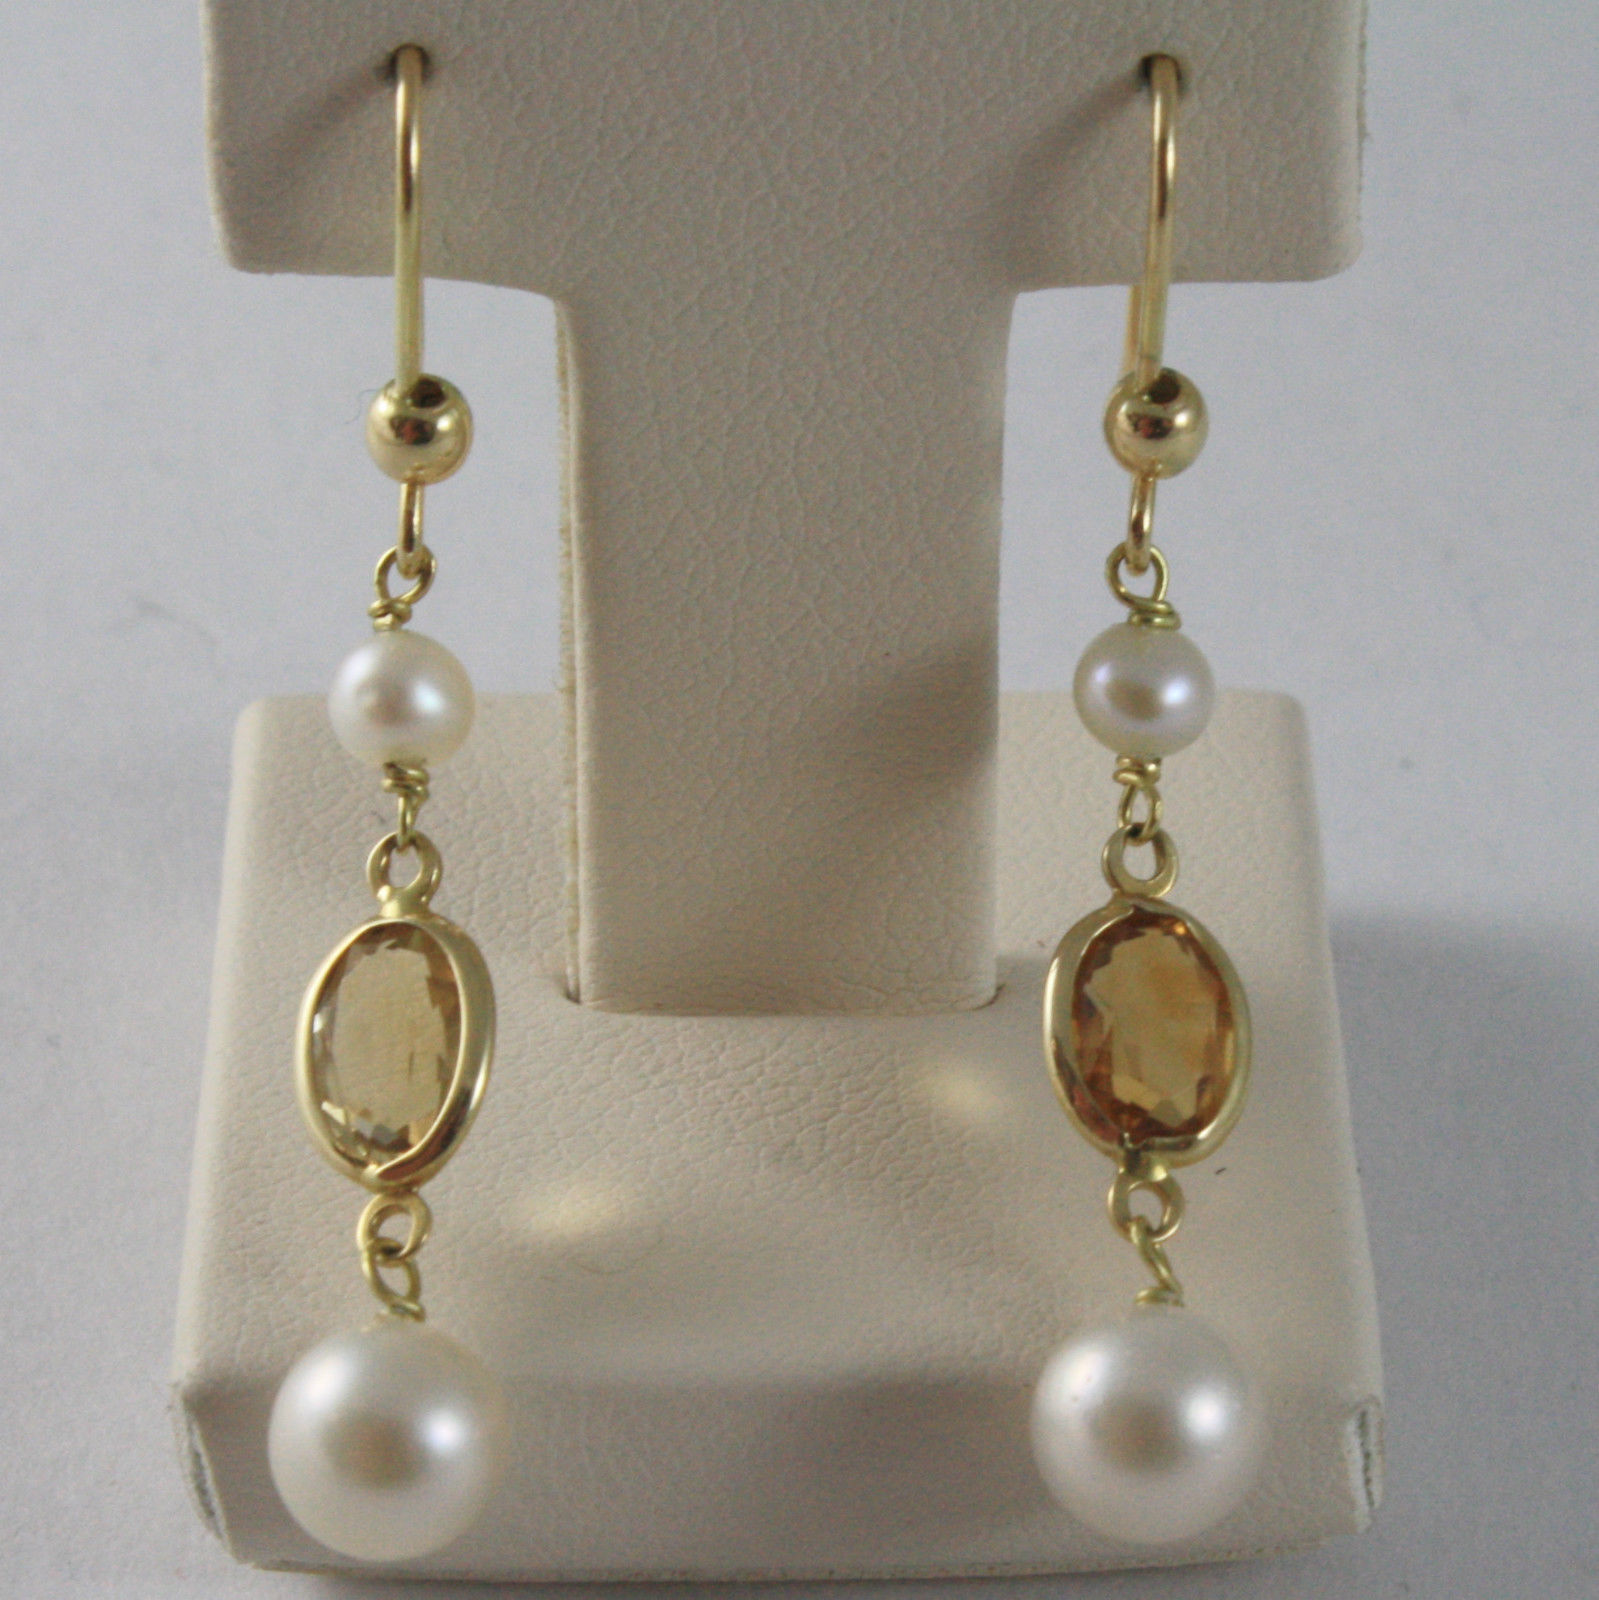 SOLID 18K YELLOW GOLD EARRINGS, YELLOW TOURMALINE, JAPANESE PEARL, MADE IN ITALY